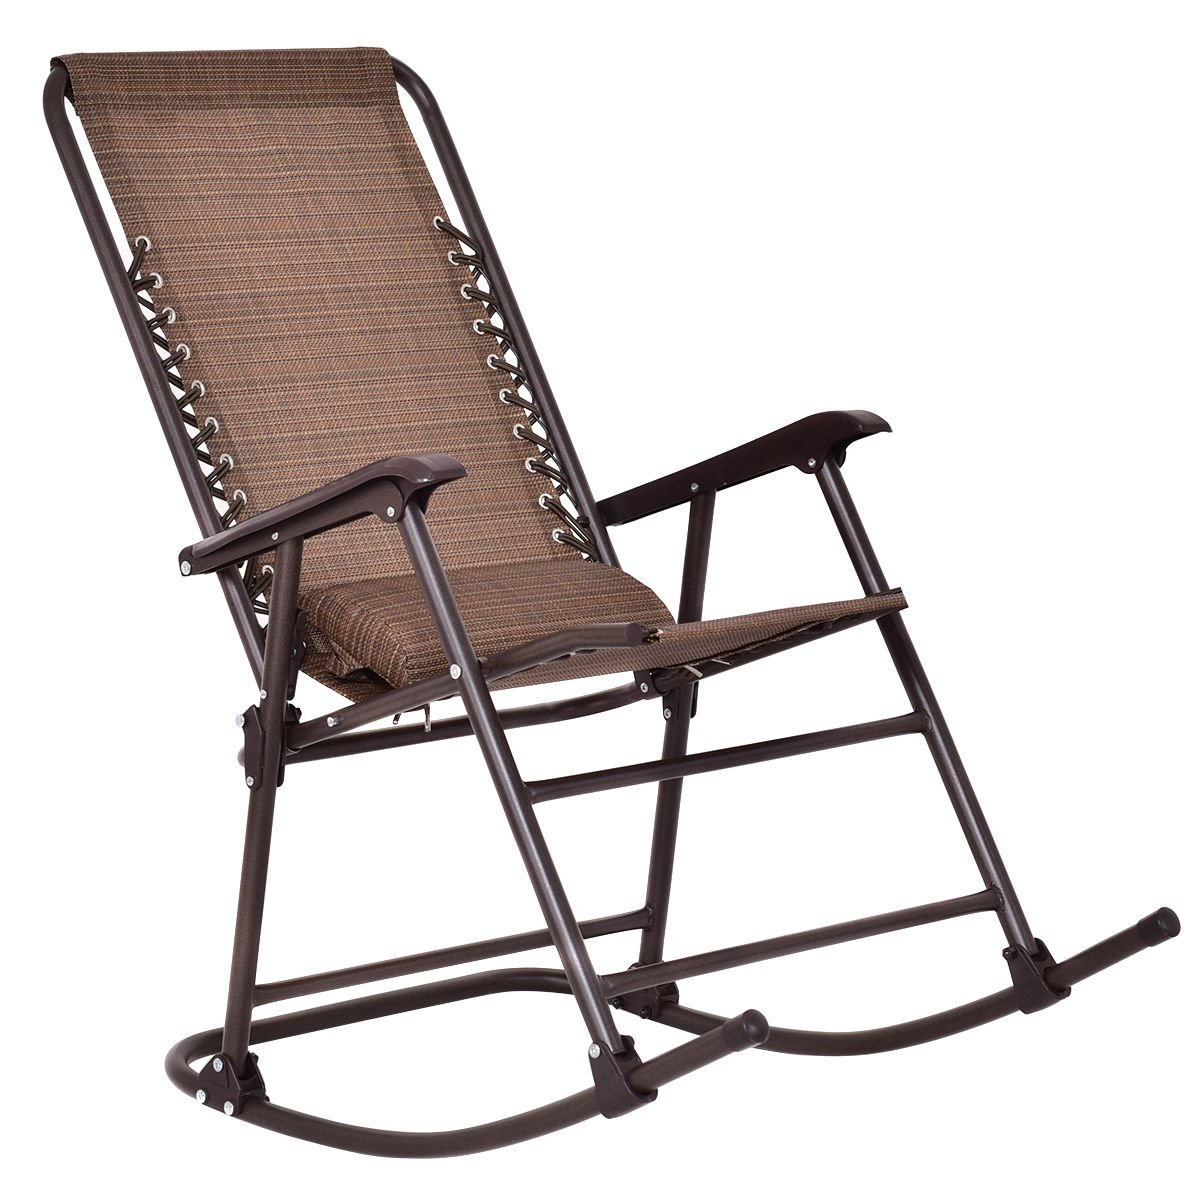 Beau Get Quotations · Goplus Folding Rocking Chair Rocker Porch Indoor Outdoor  Patio Furniture W/ Headrest